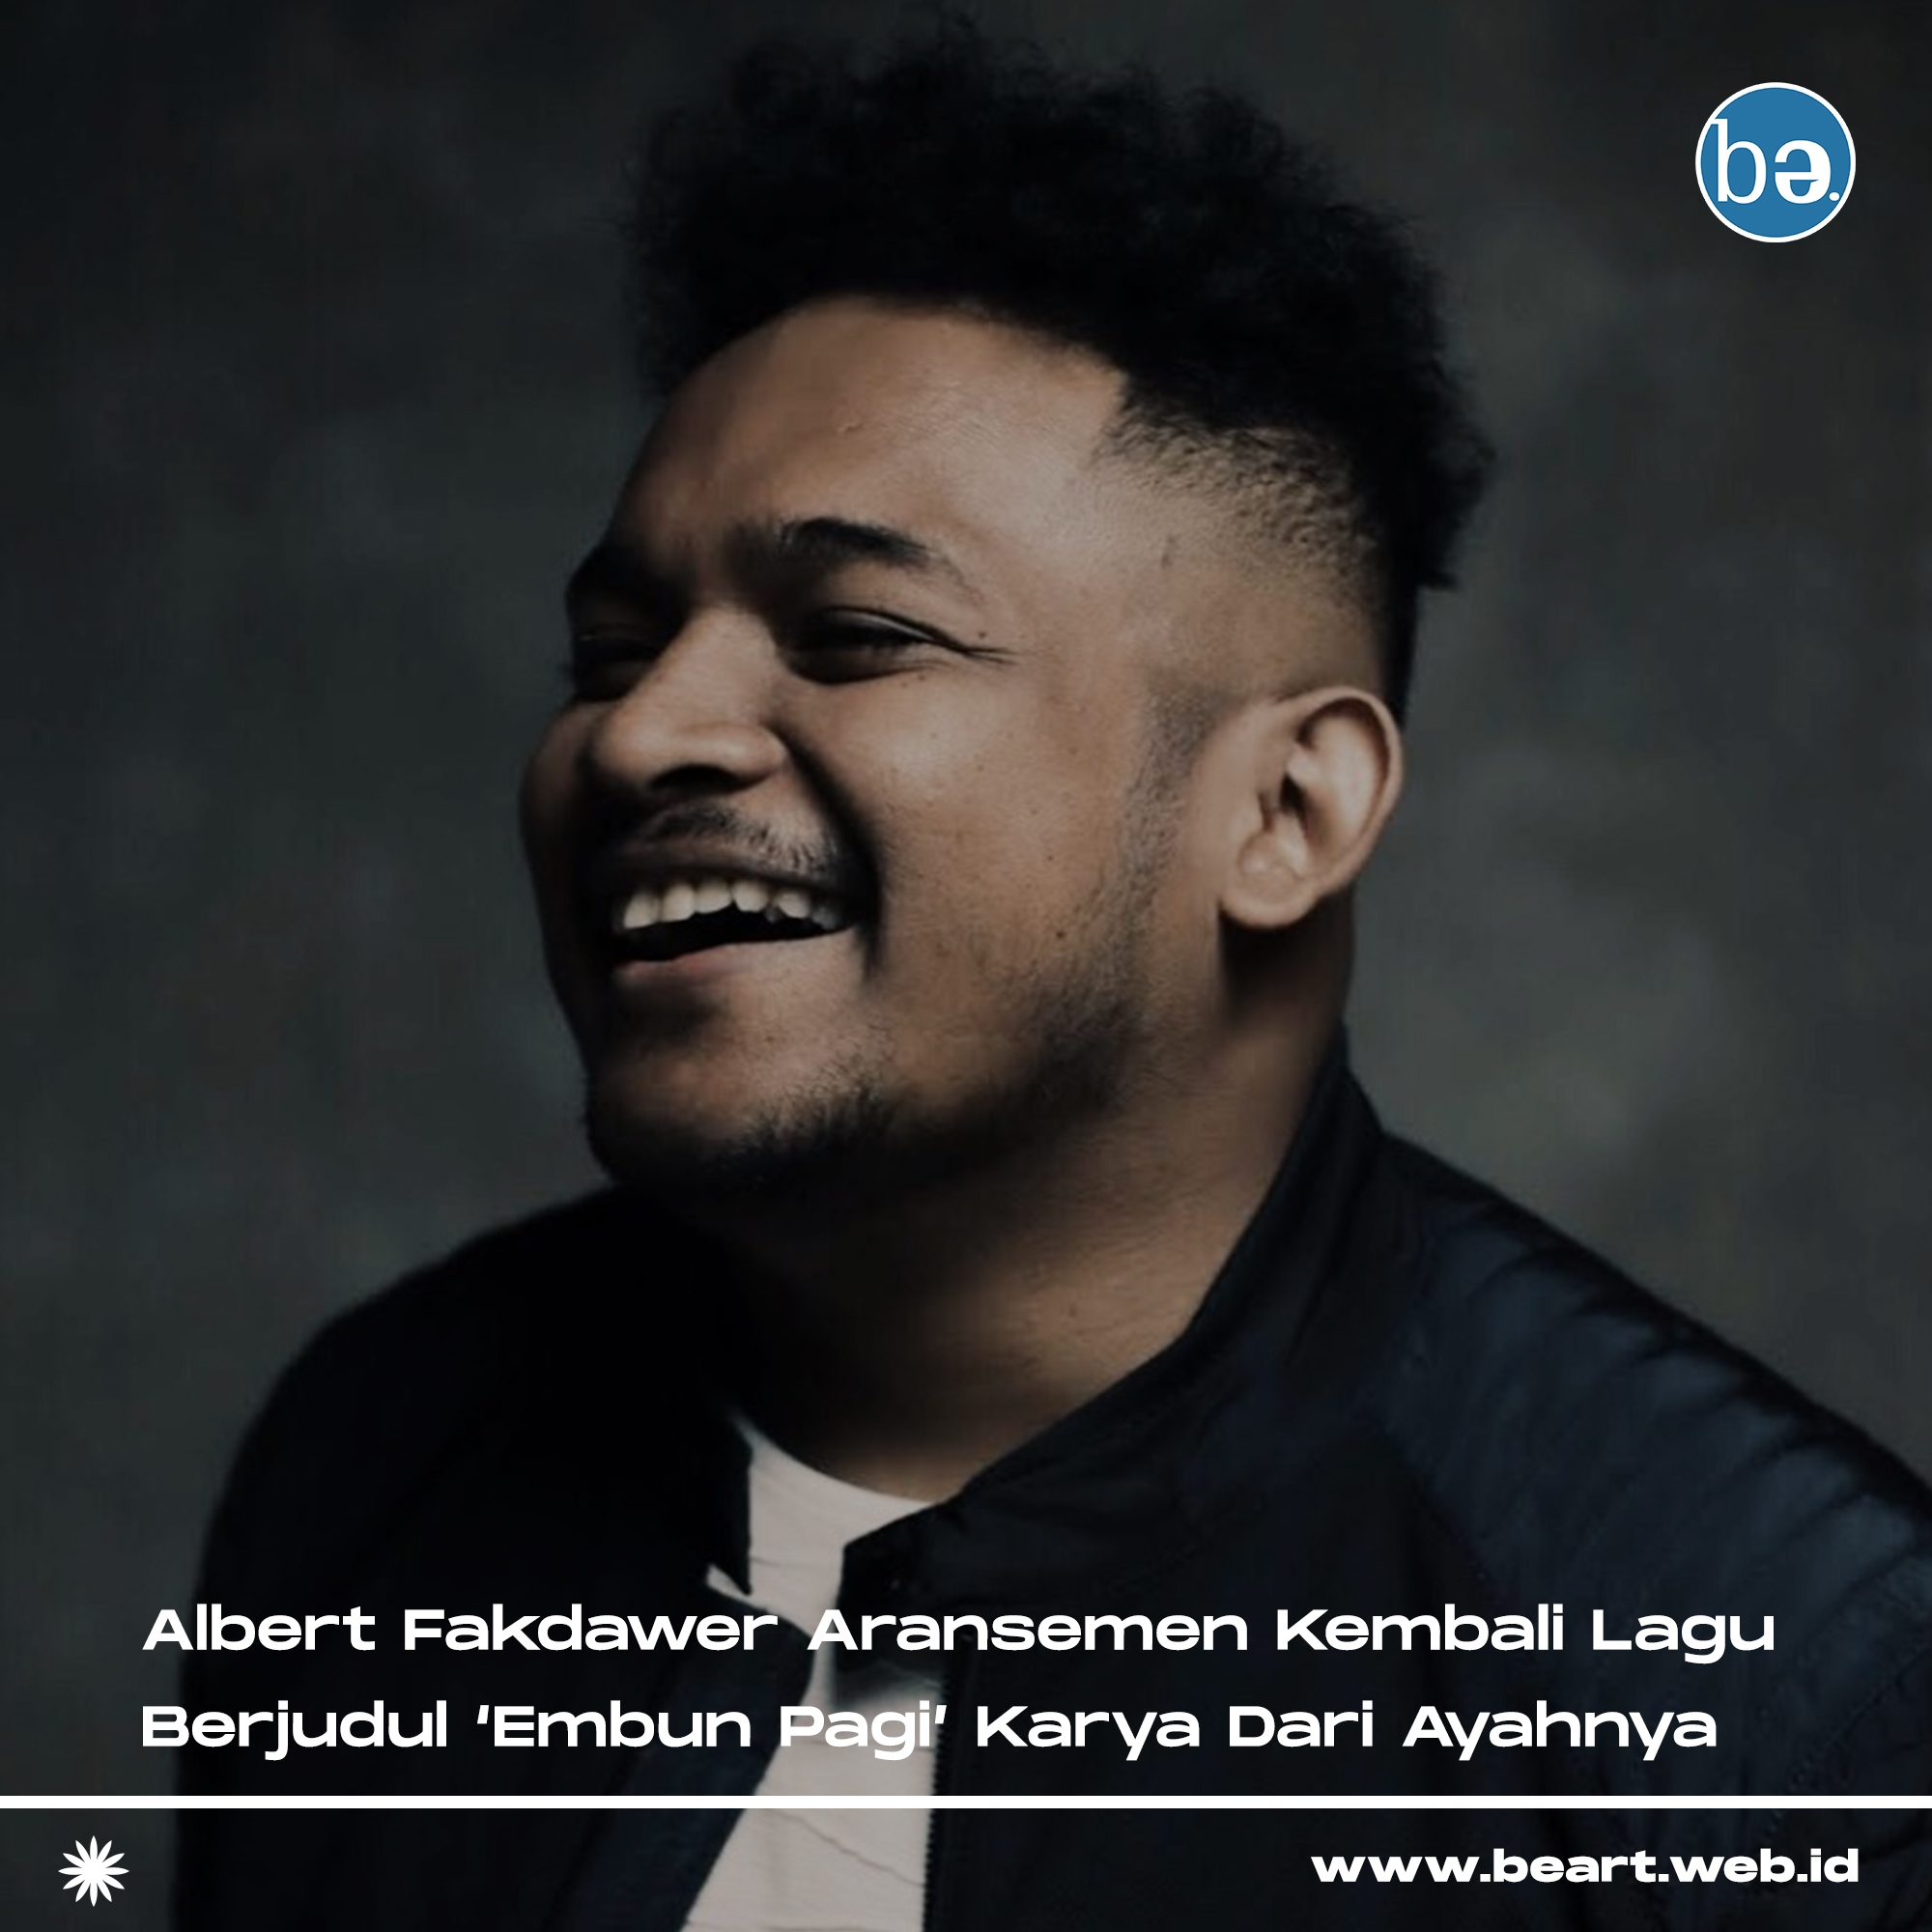 Albert Fakdawer Embun Pagi Beart